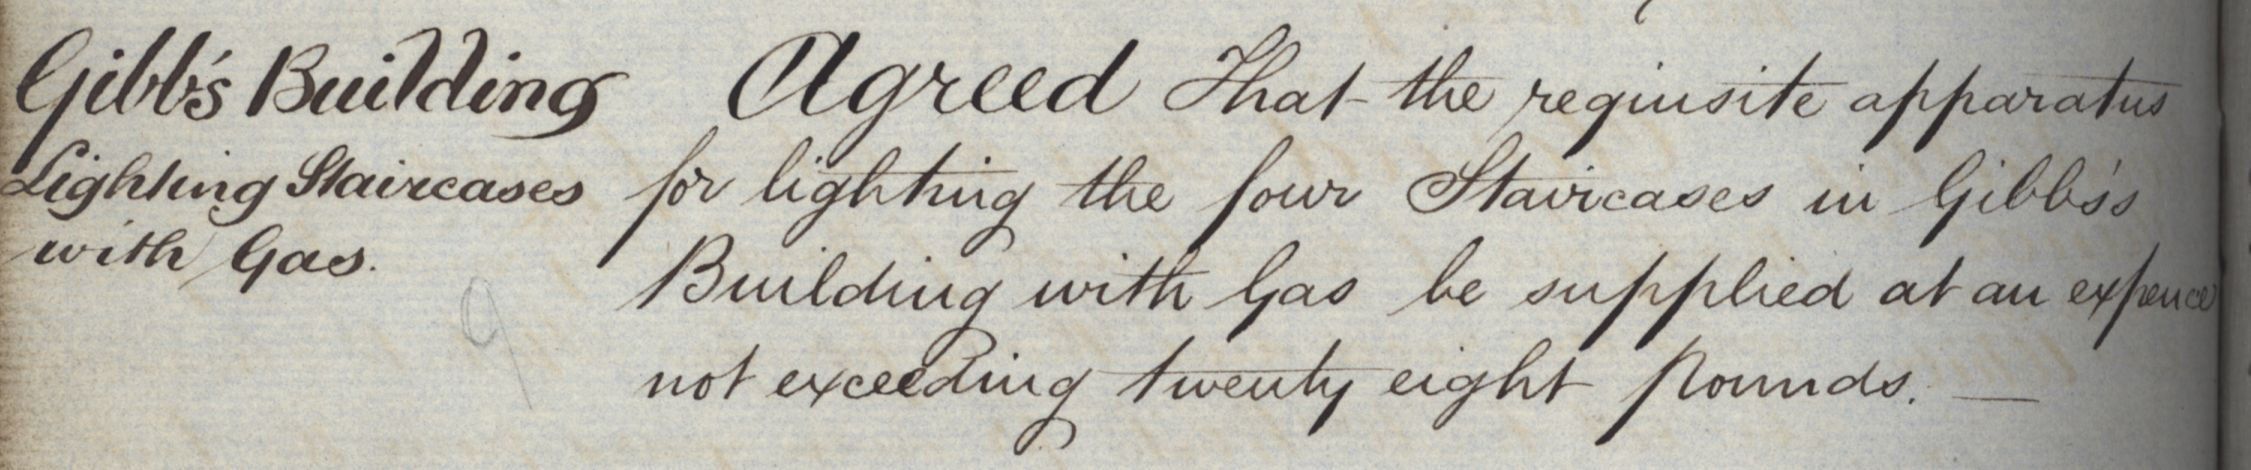 Agreement to instal lighting with gas in the staircases of the Gibbs building, Congregation minutes, 3 February 1847. [KCGB/4/1/1/5]